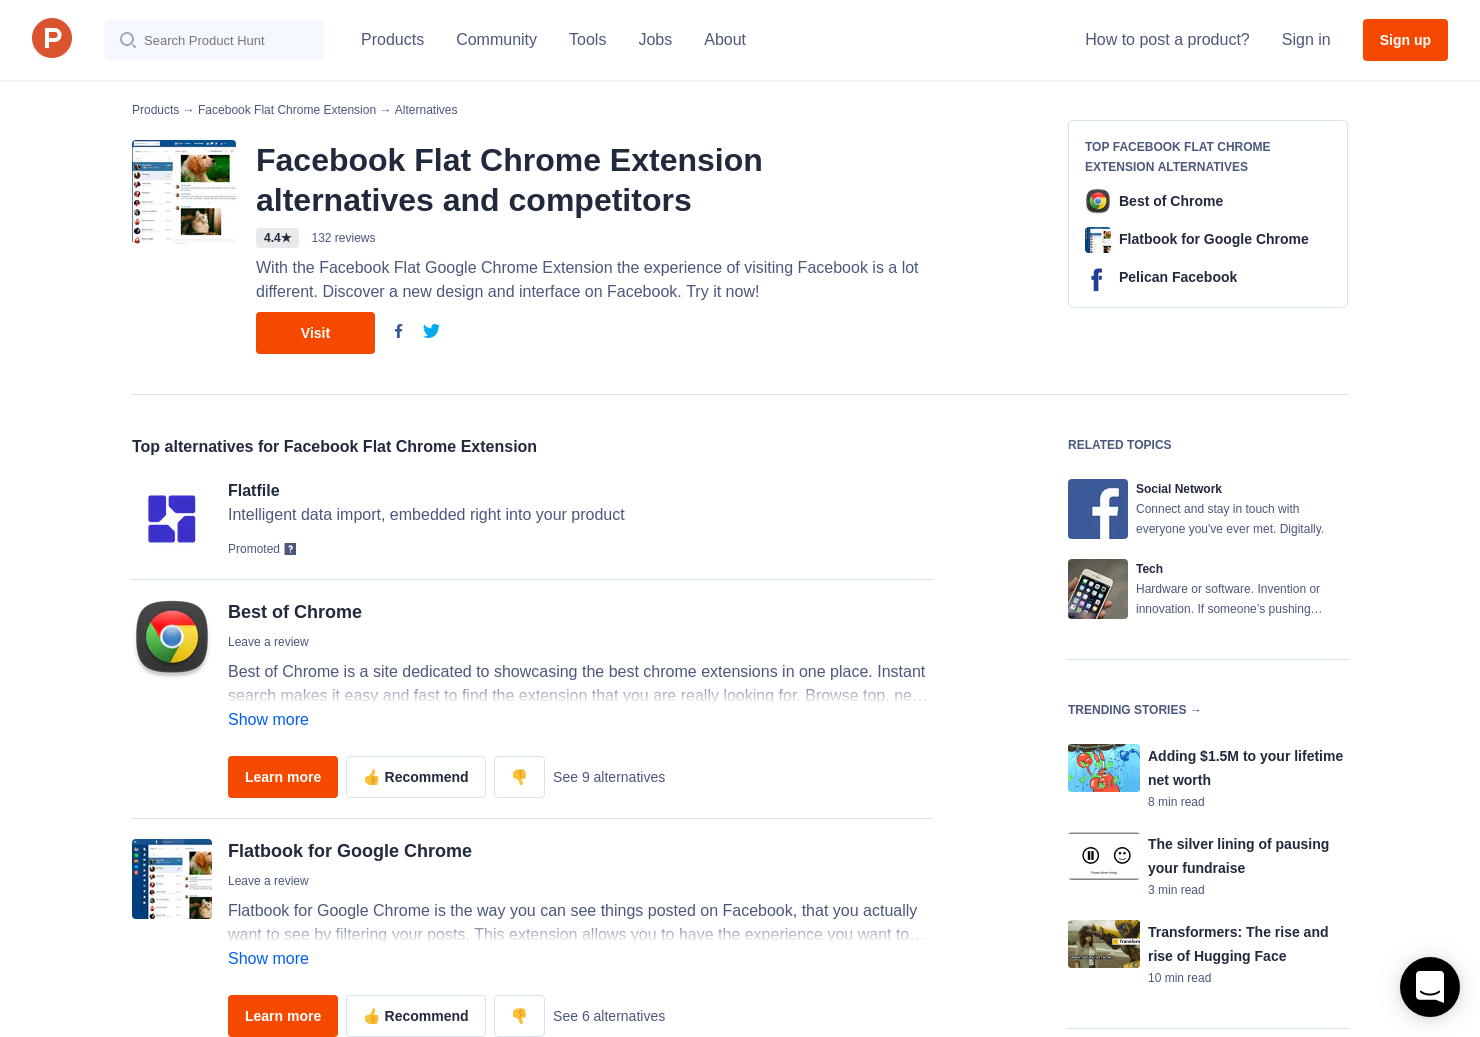 6 Alternatives to Facebook Flat Chrome Extension | Product Hunt